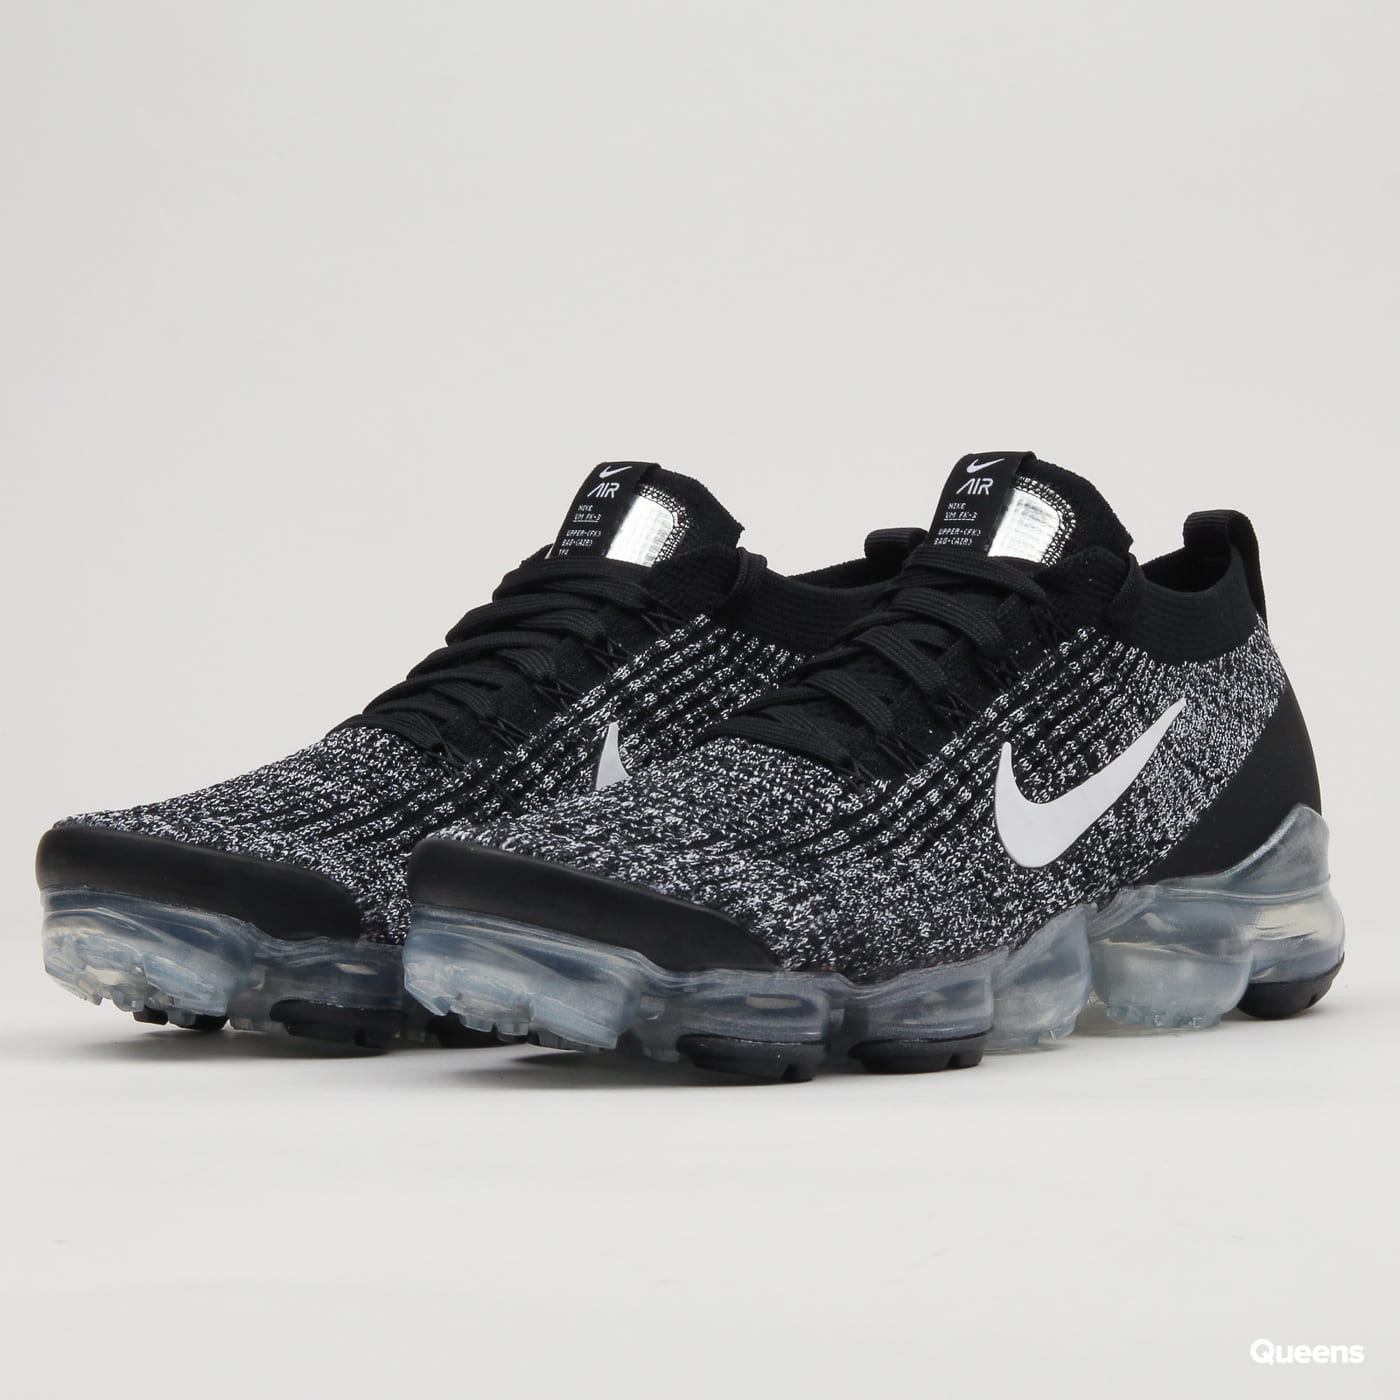 Nike Air Vapormax Flyknit 3 black / white - metallic silver